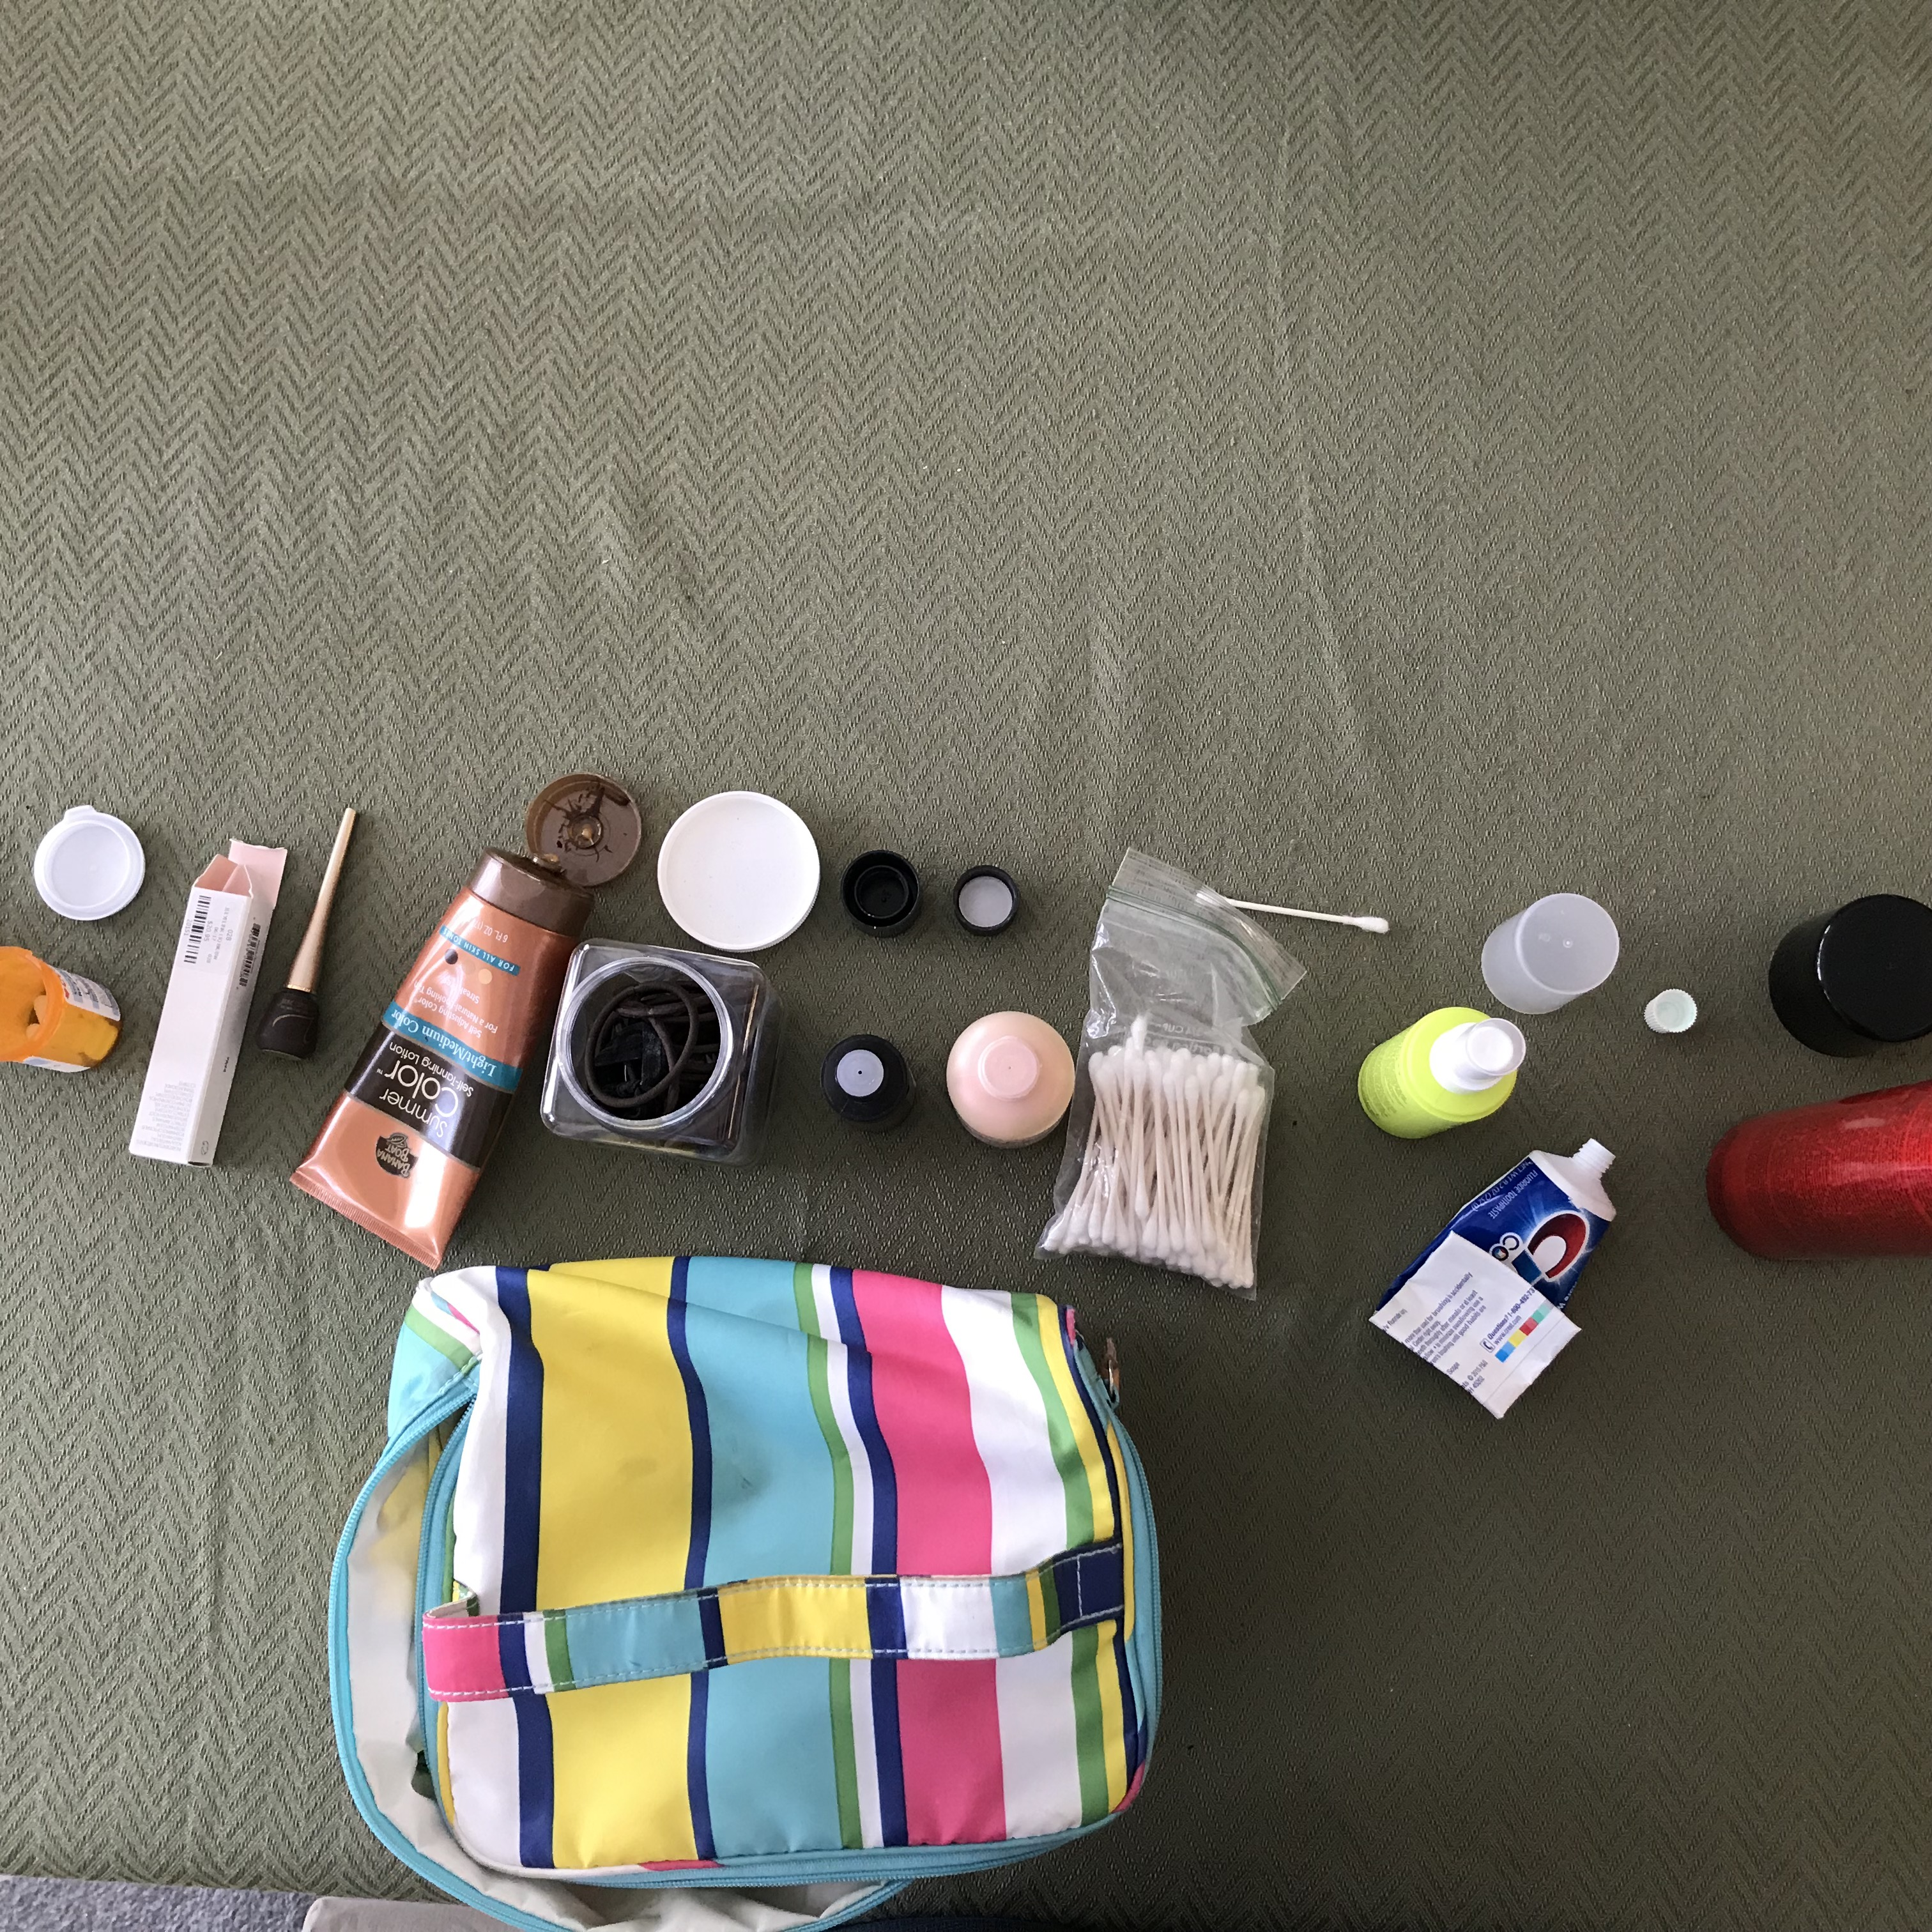 Assorted items from makeup bag